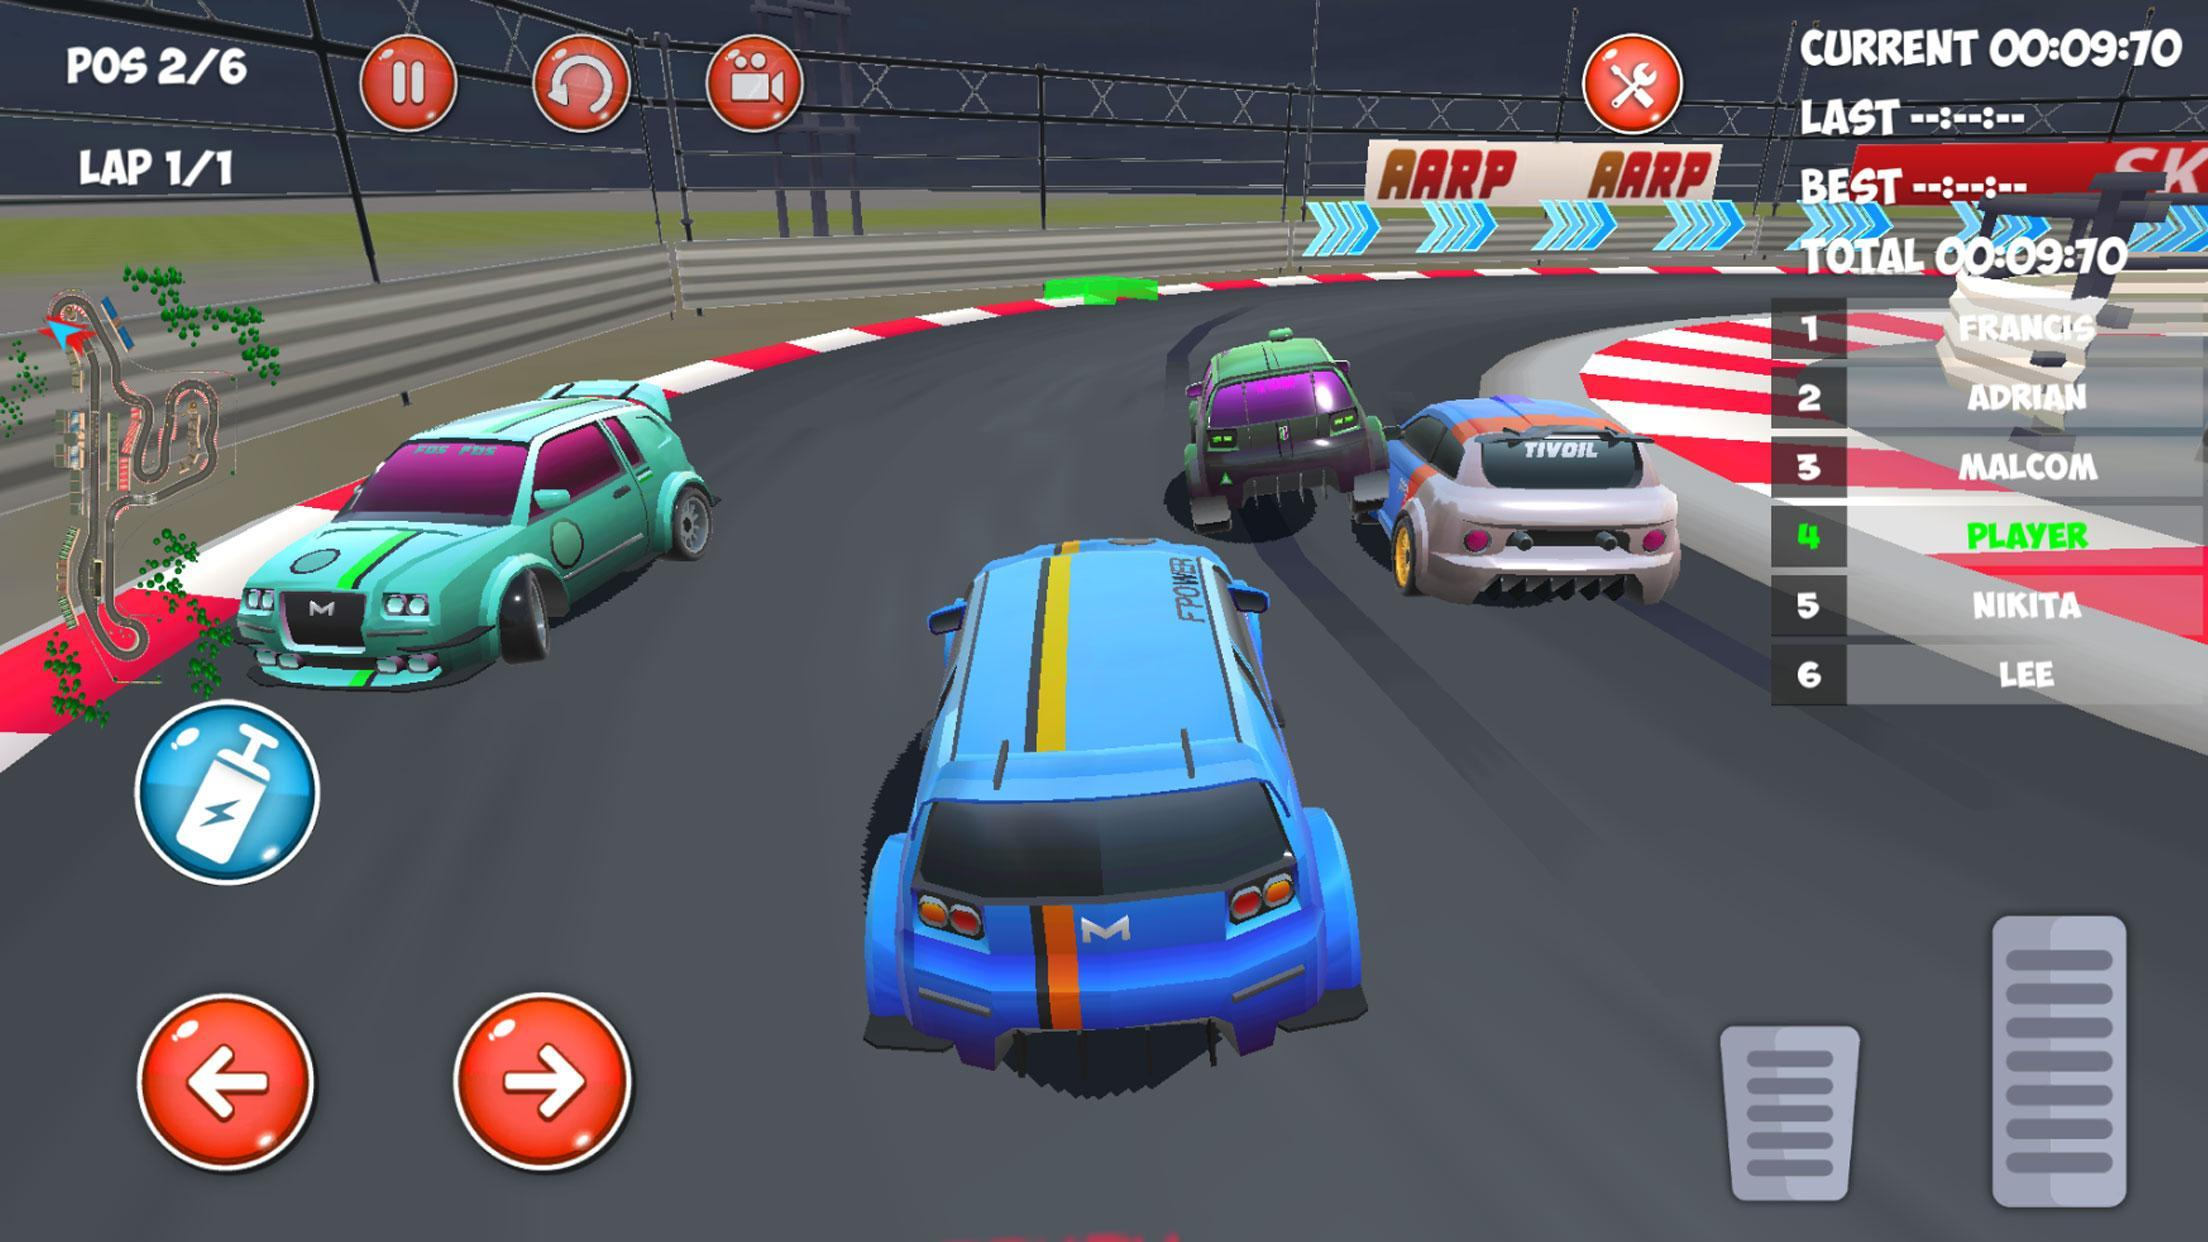 Drift Car Racing Games: Traffic Driving Game for Android